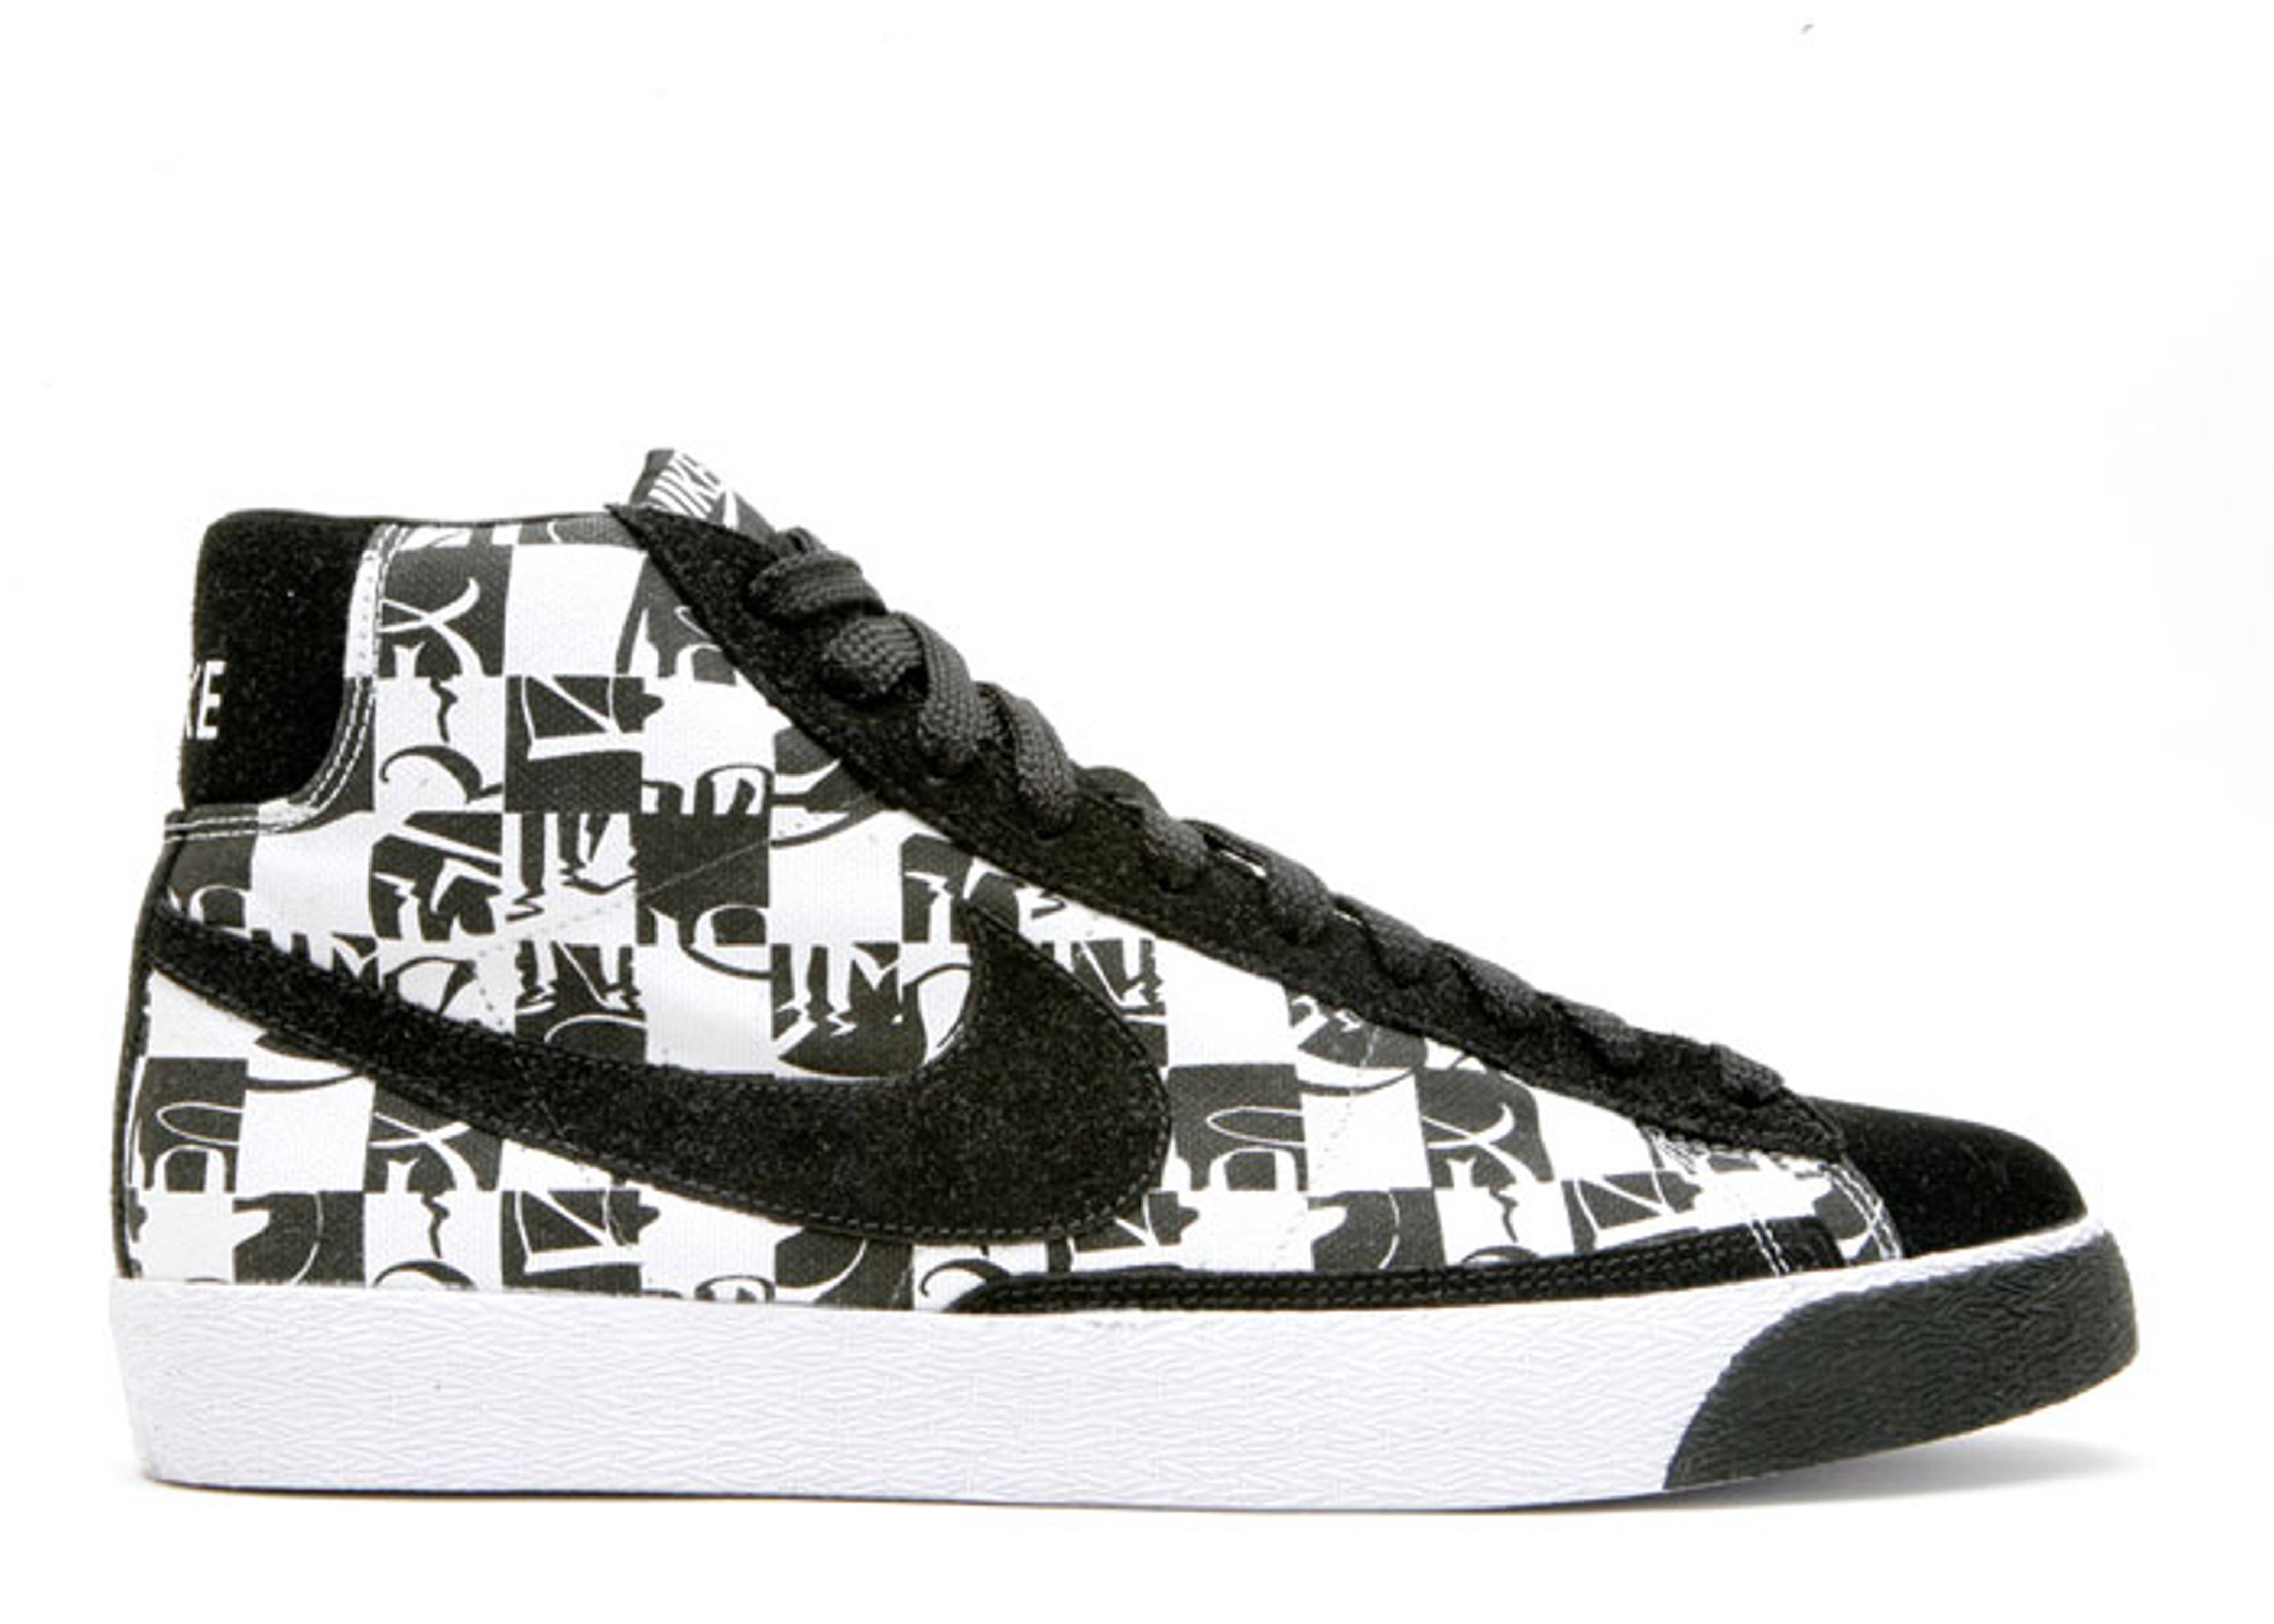 separation shoes cbc24 bba4f inexpensive nike blazer x stussy 76046 d68f1